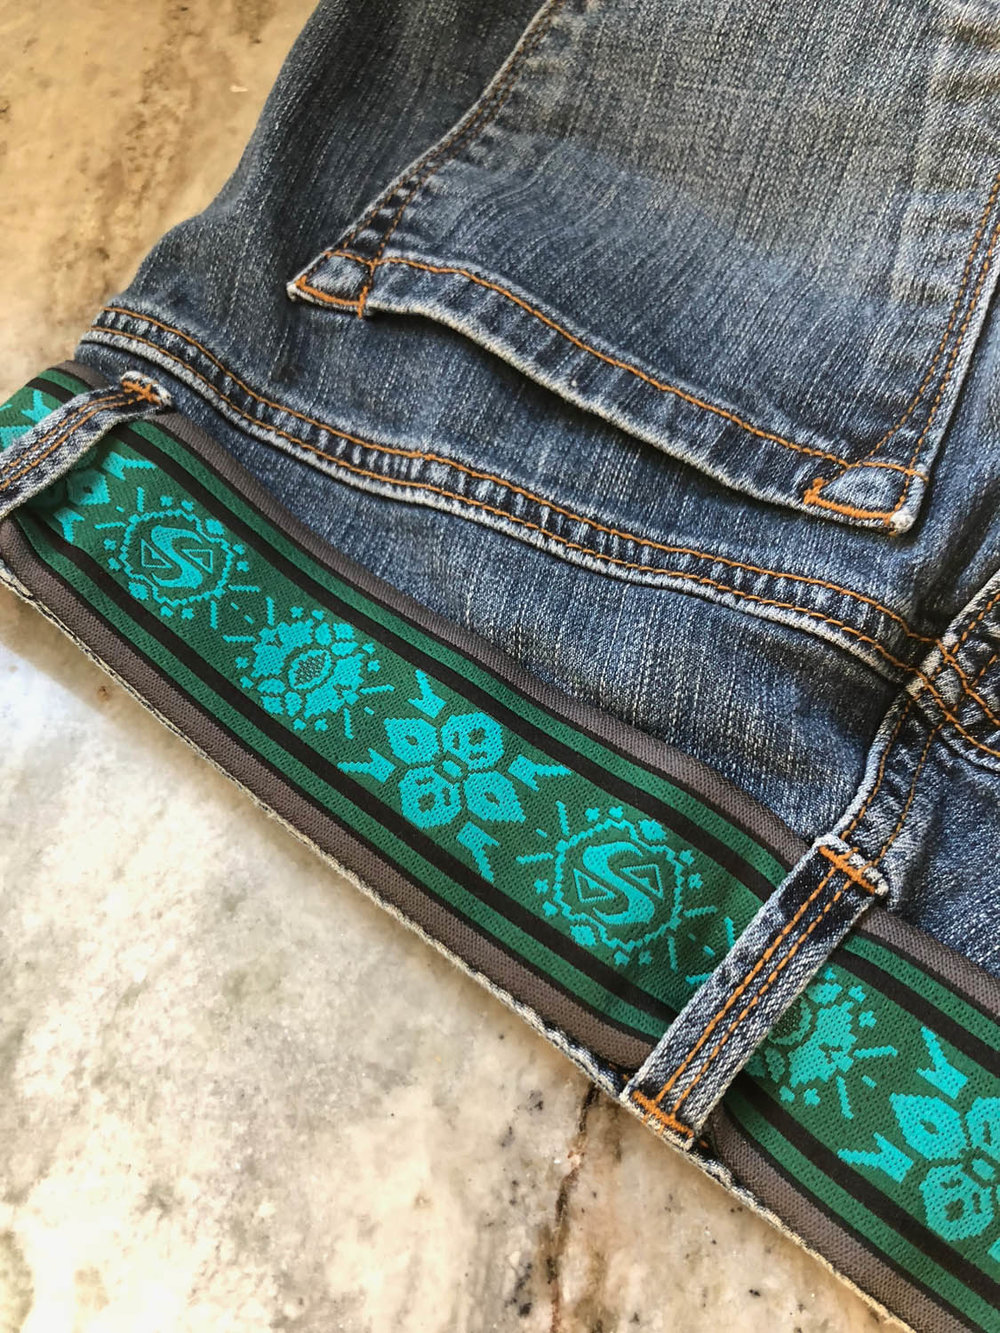 upholstery trim for belt on embellished denim blue jeans